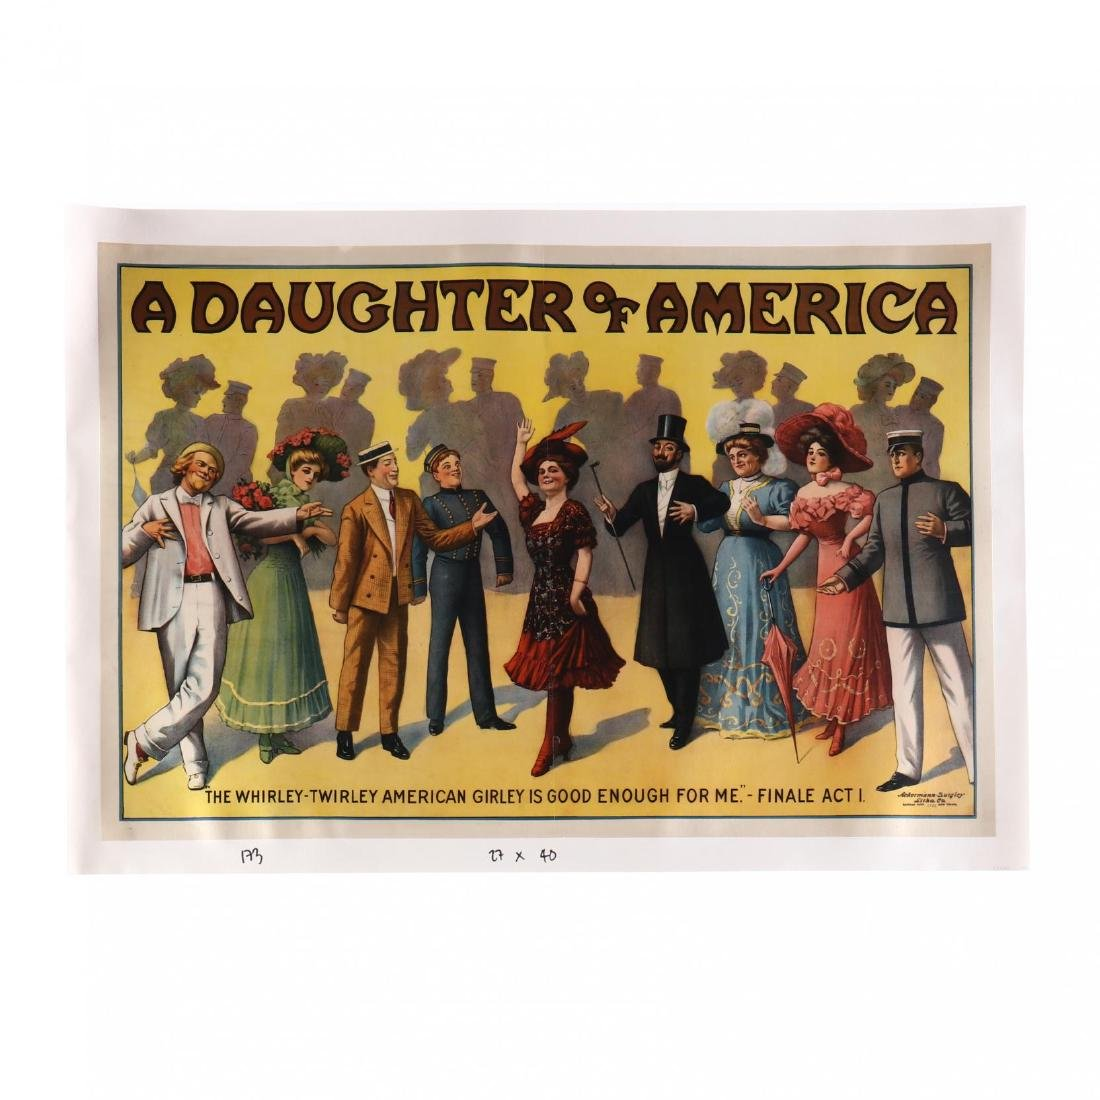 A Daughter of America - 'The Whirley-Twirley Amerian